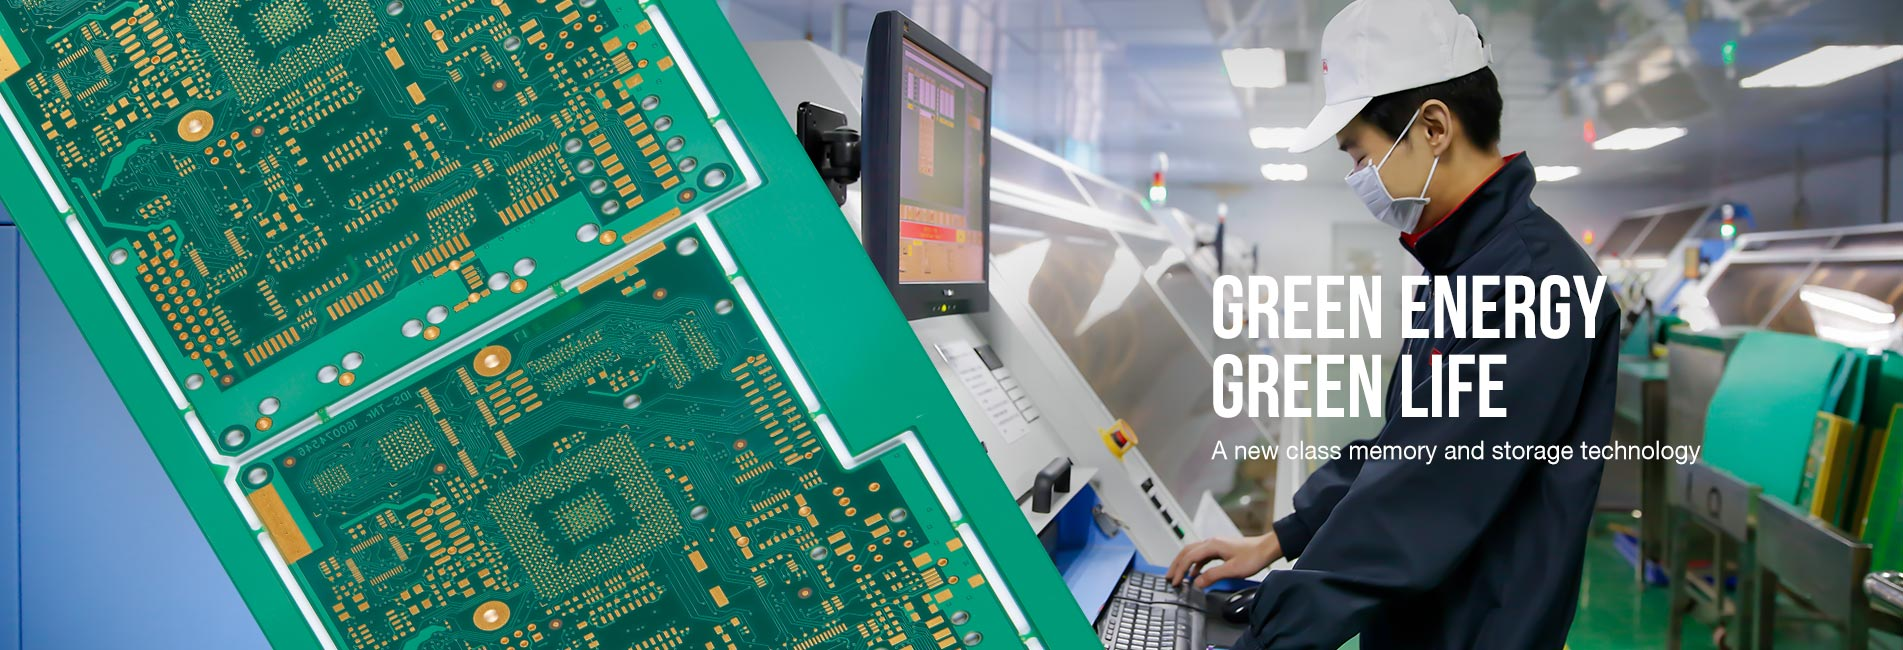 Printed Circuit Board Manufacturer Pcb Assembly Everpcb Manufacturing Manufacturers Previousnext